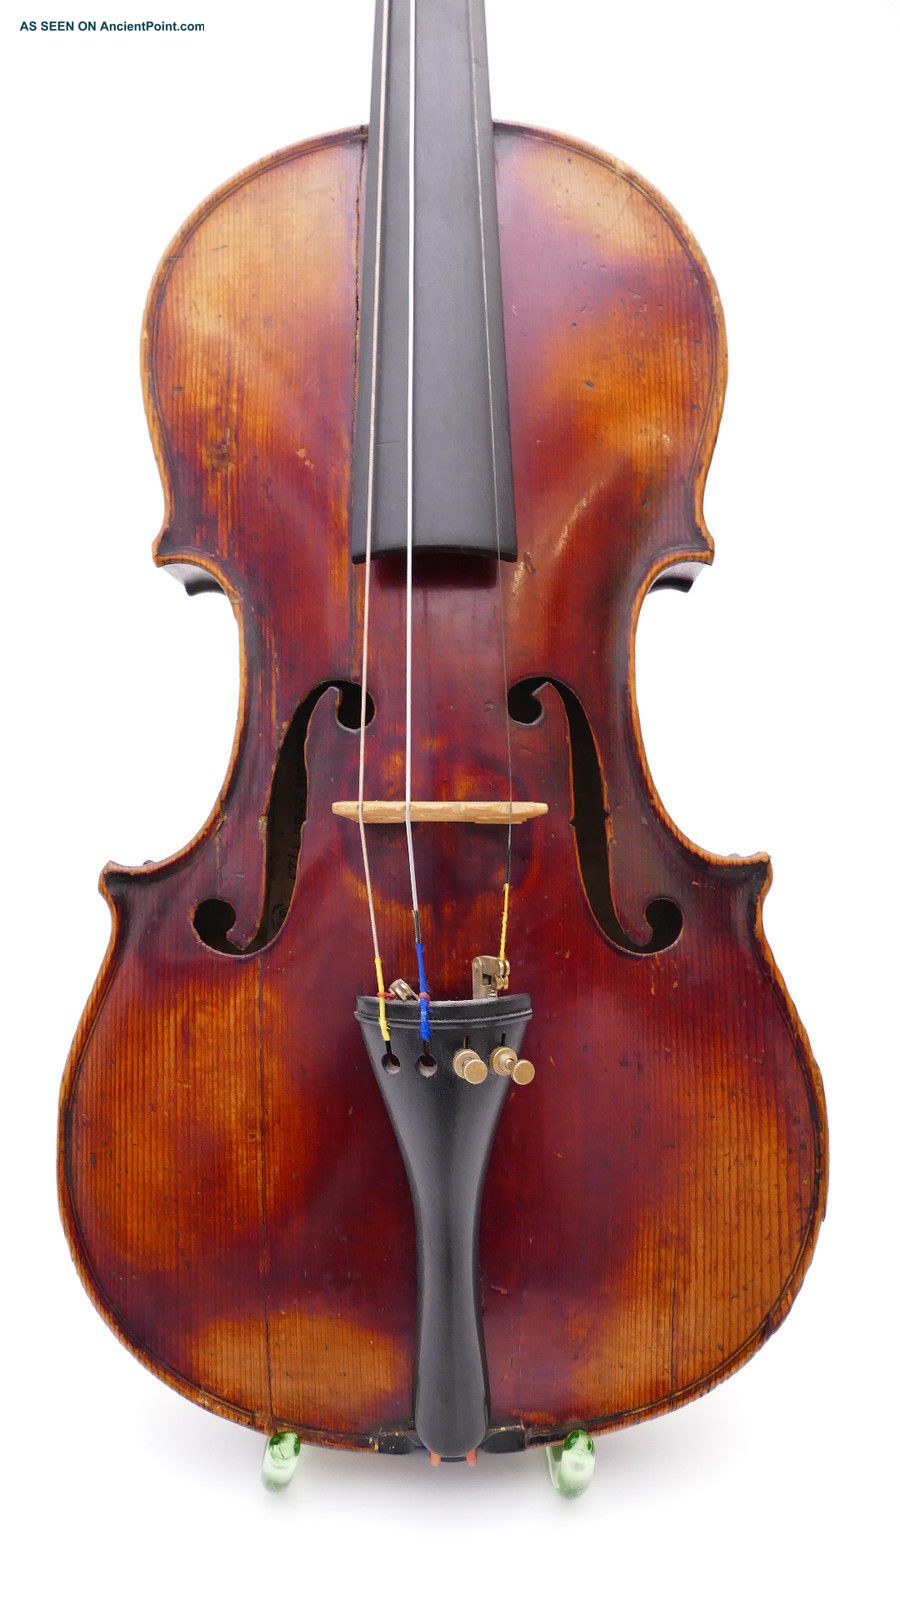 Antonius Stradiuarius Antique Old Violin Violin0 Violine Viola German Germany String photo